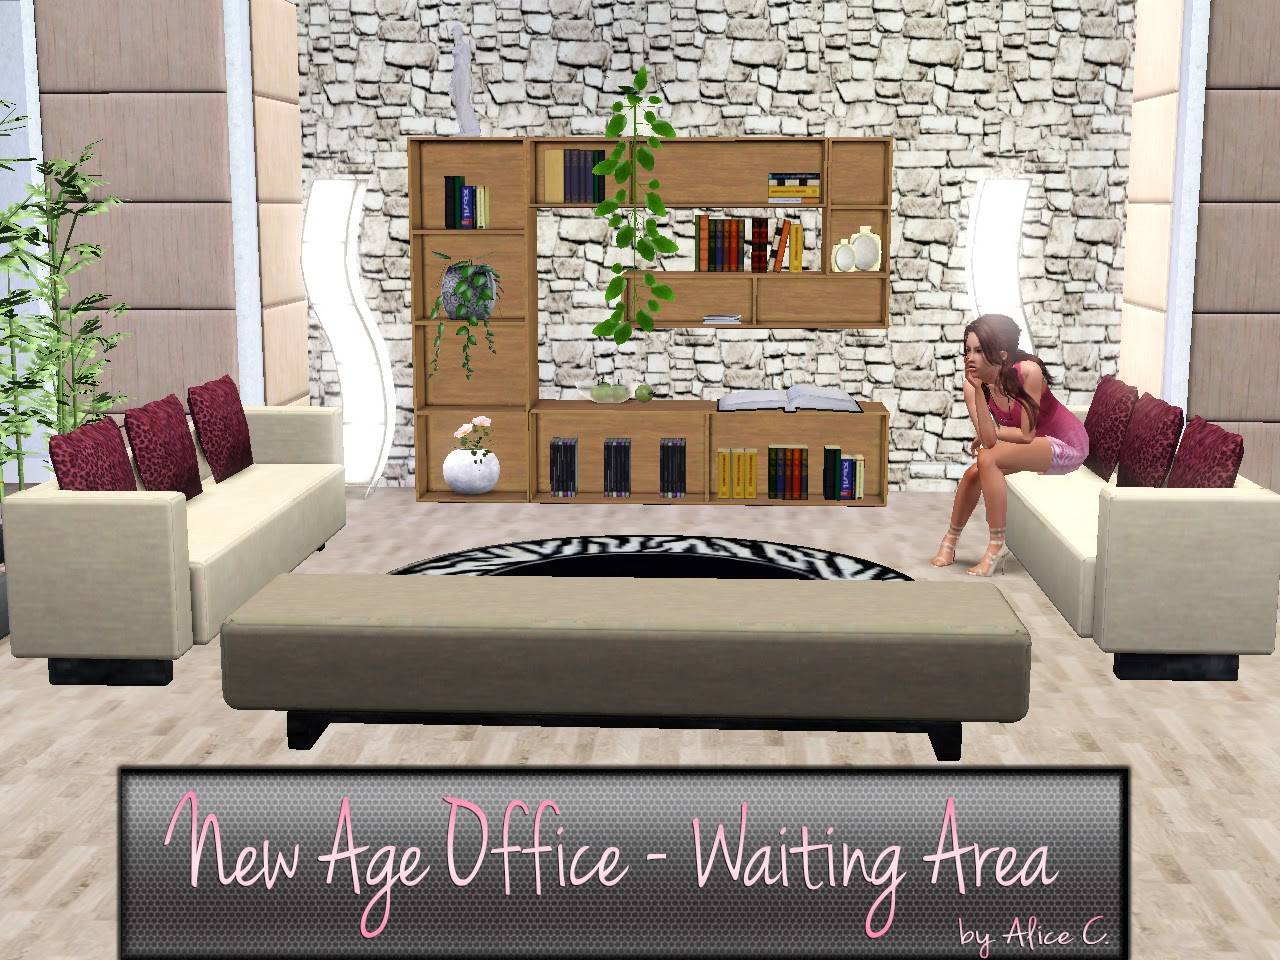 New Age Office Set by Alice C